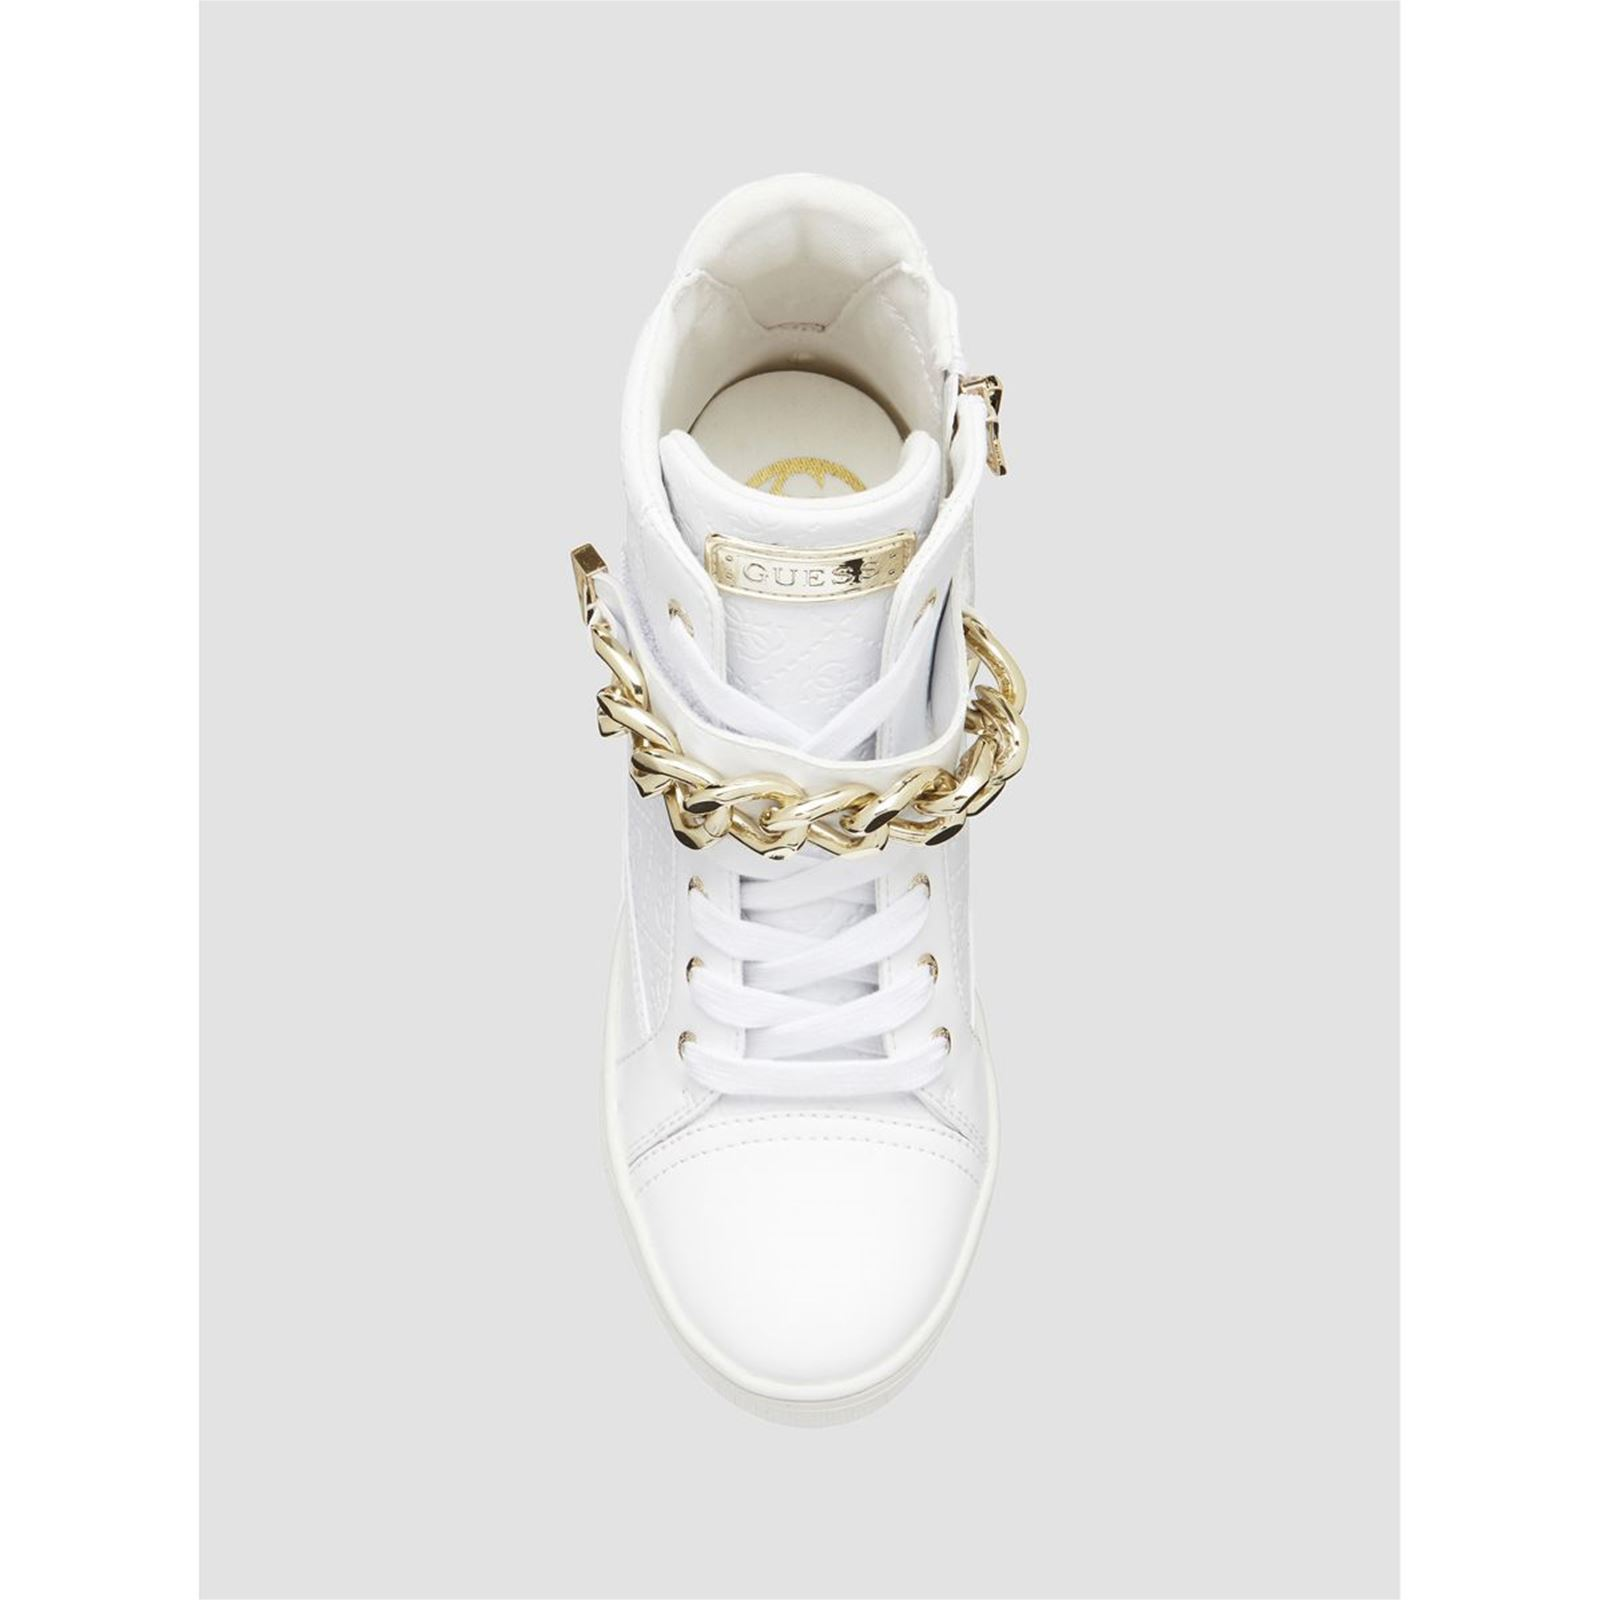 Compensées Logo Baskets Brandalley Guess Montantes Flipper Blanc zxpO0tO